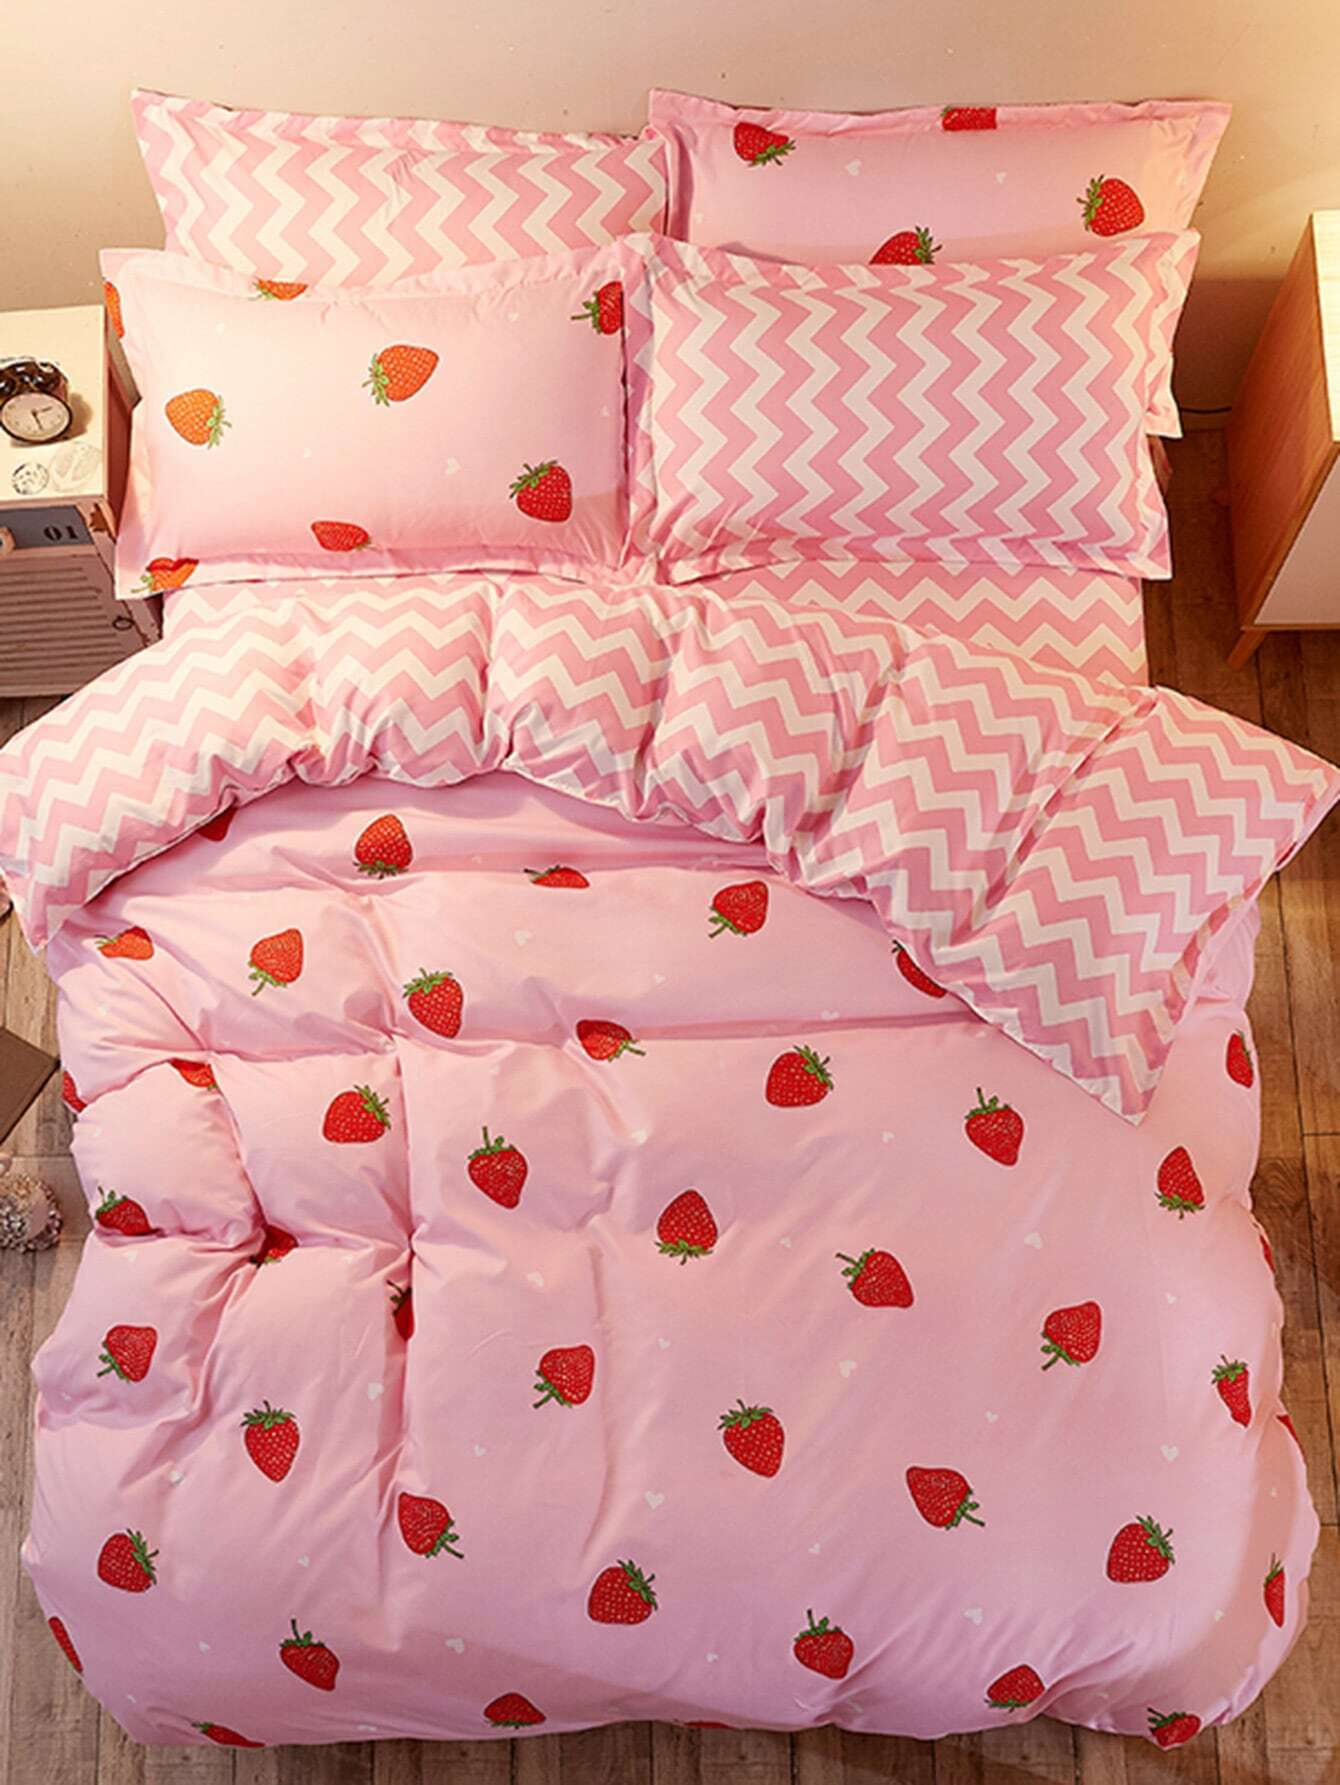 1.8m 4Pcs Fruit Print Chevron Duvet Cover Set 1 2m 4pcs fruit print duvet cover set